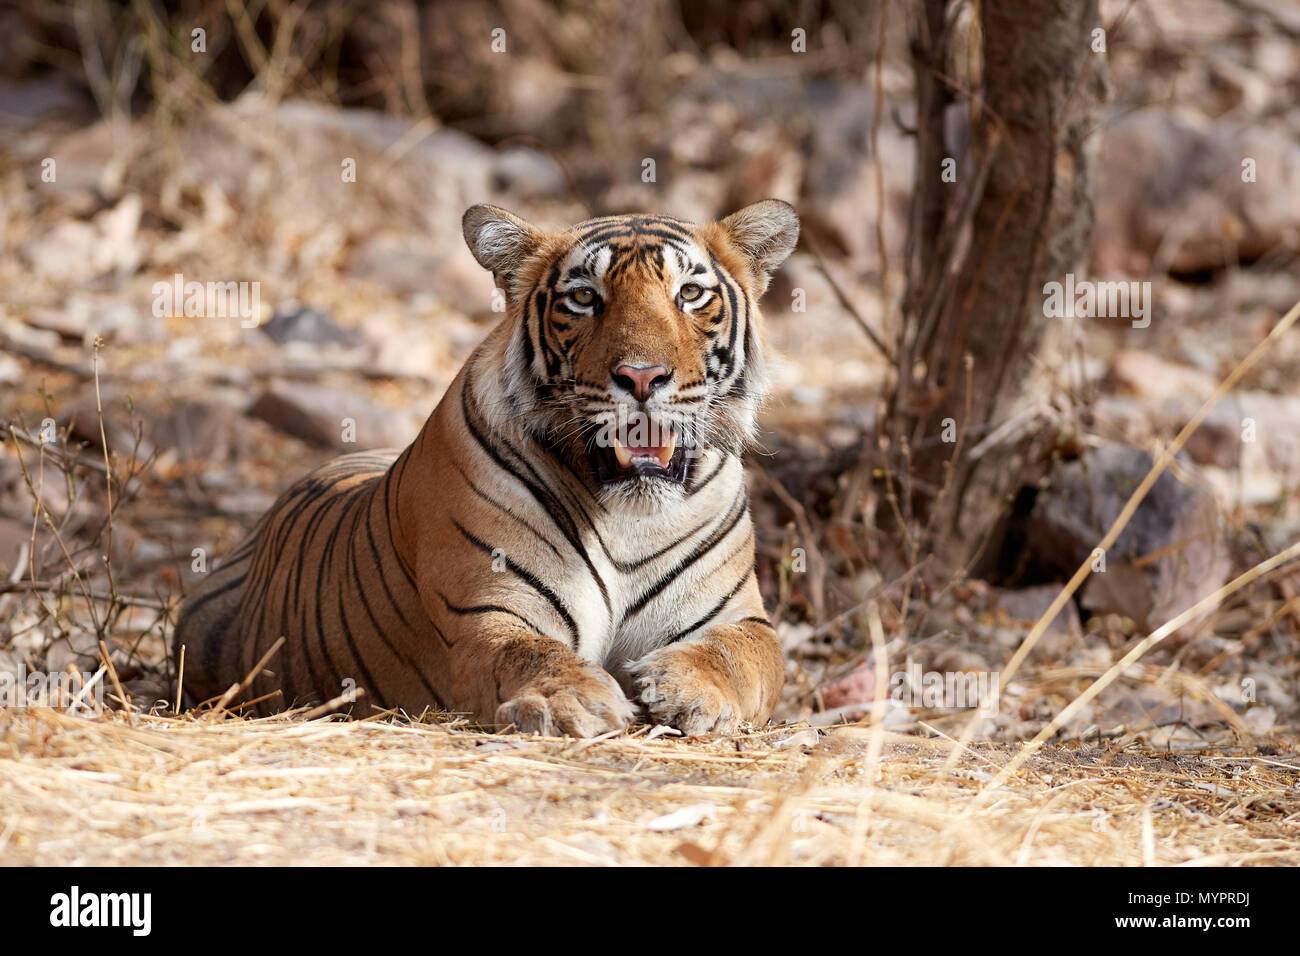 Junior Indu's male tiger cub - Stock Image